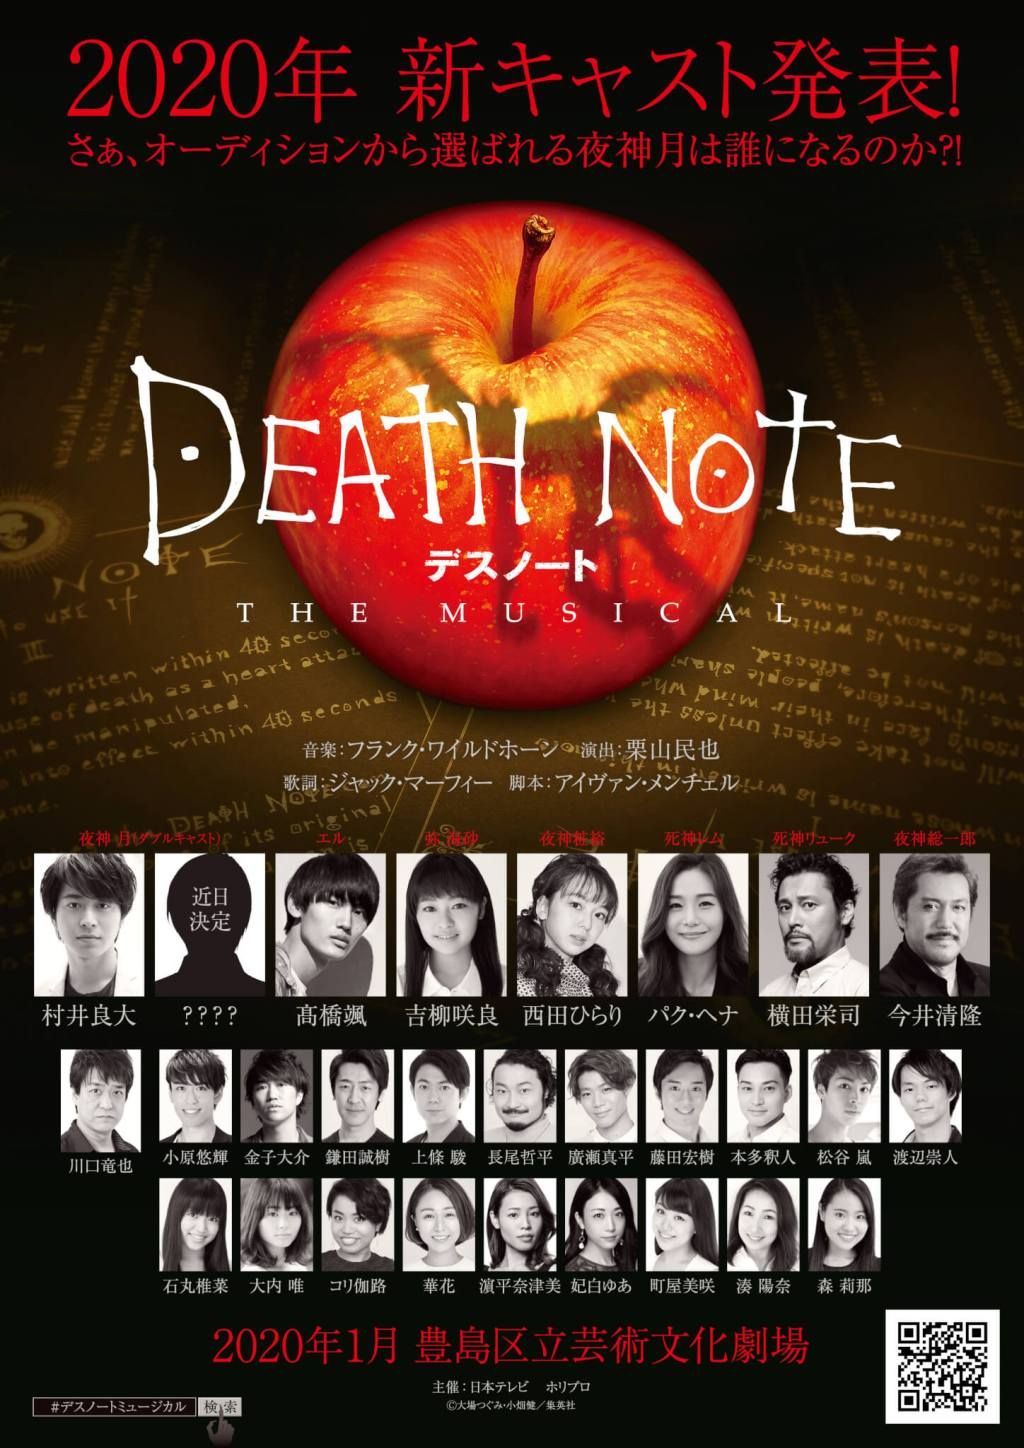 Death Note 2.5D musical returns with a brand new cast